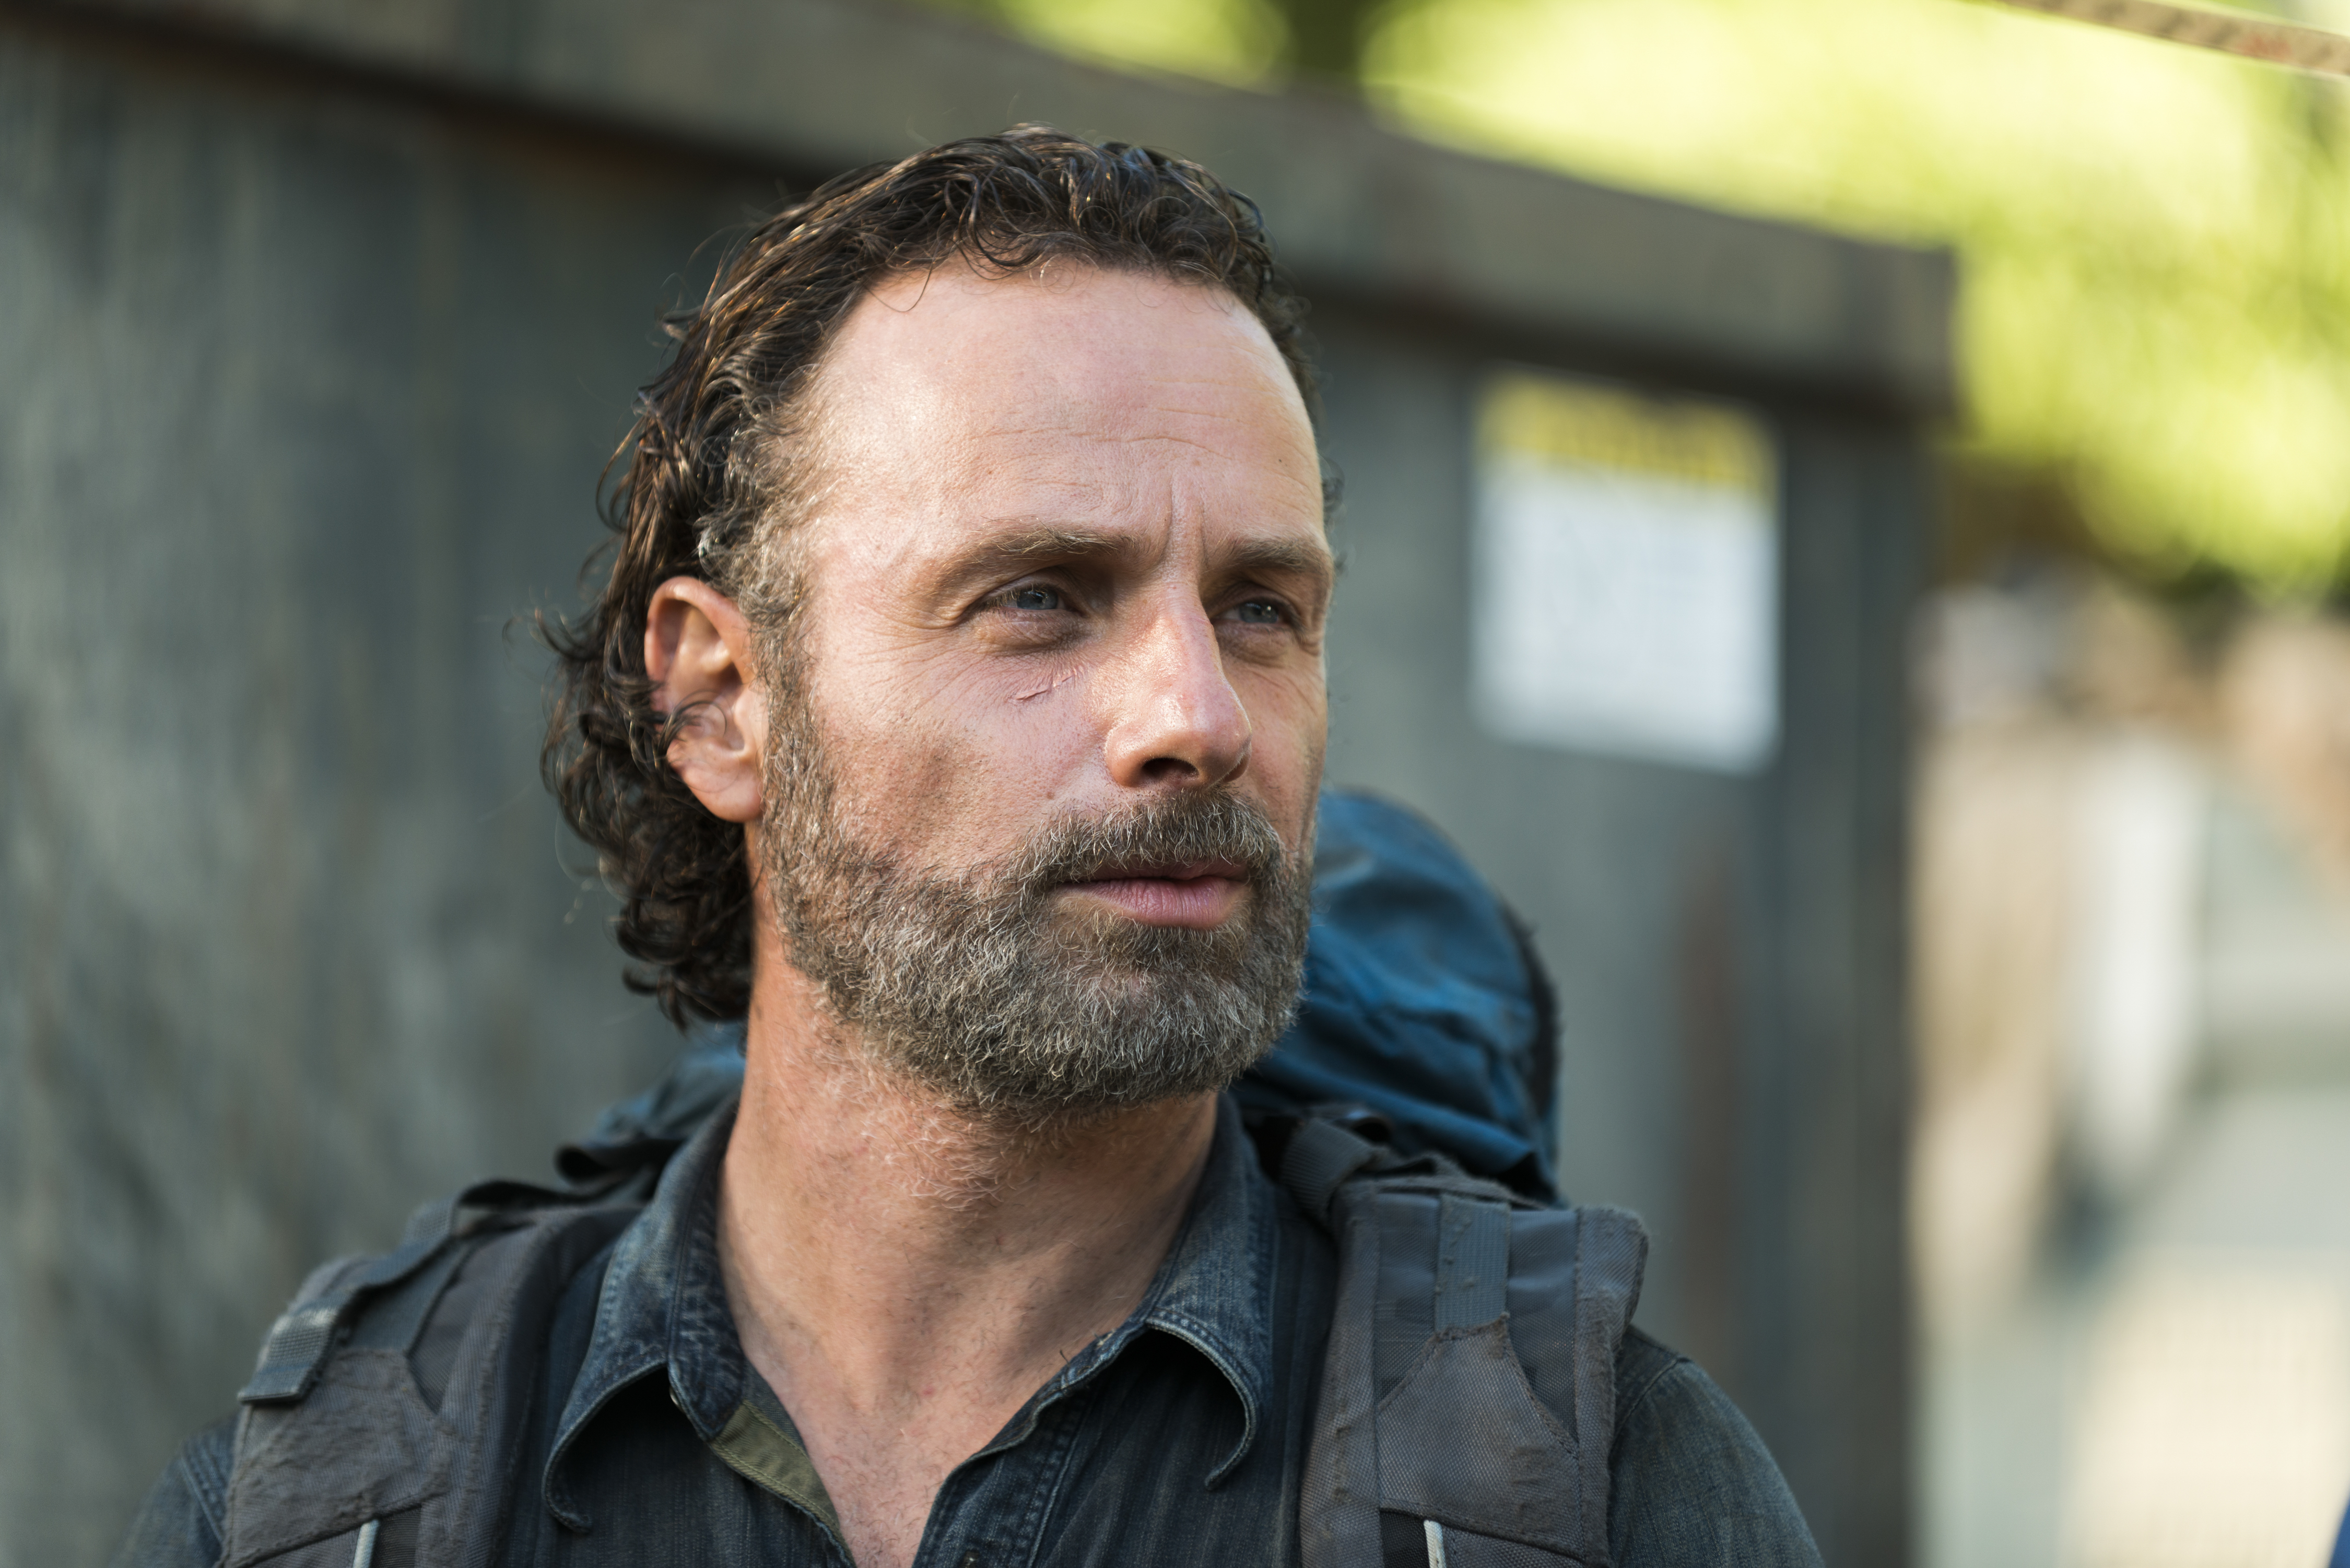 twd_712_gp_0922_0001-rt